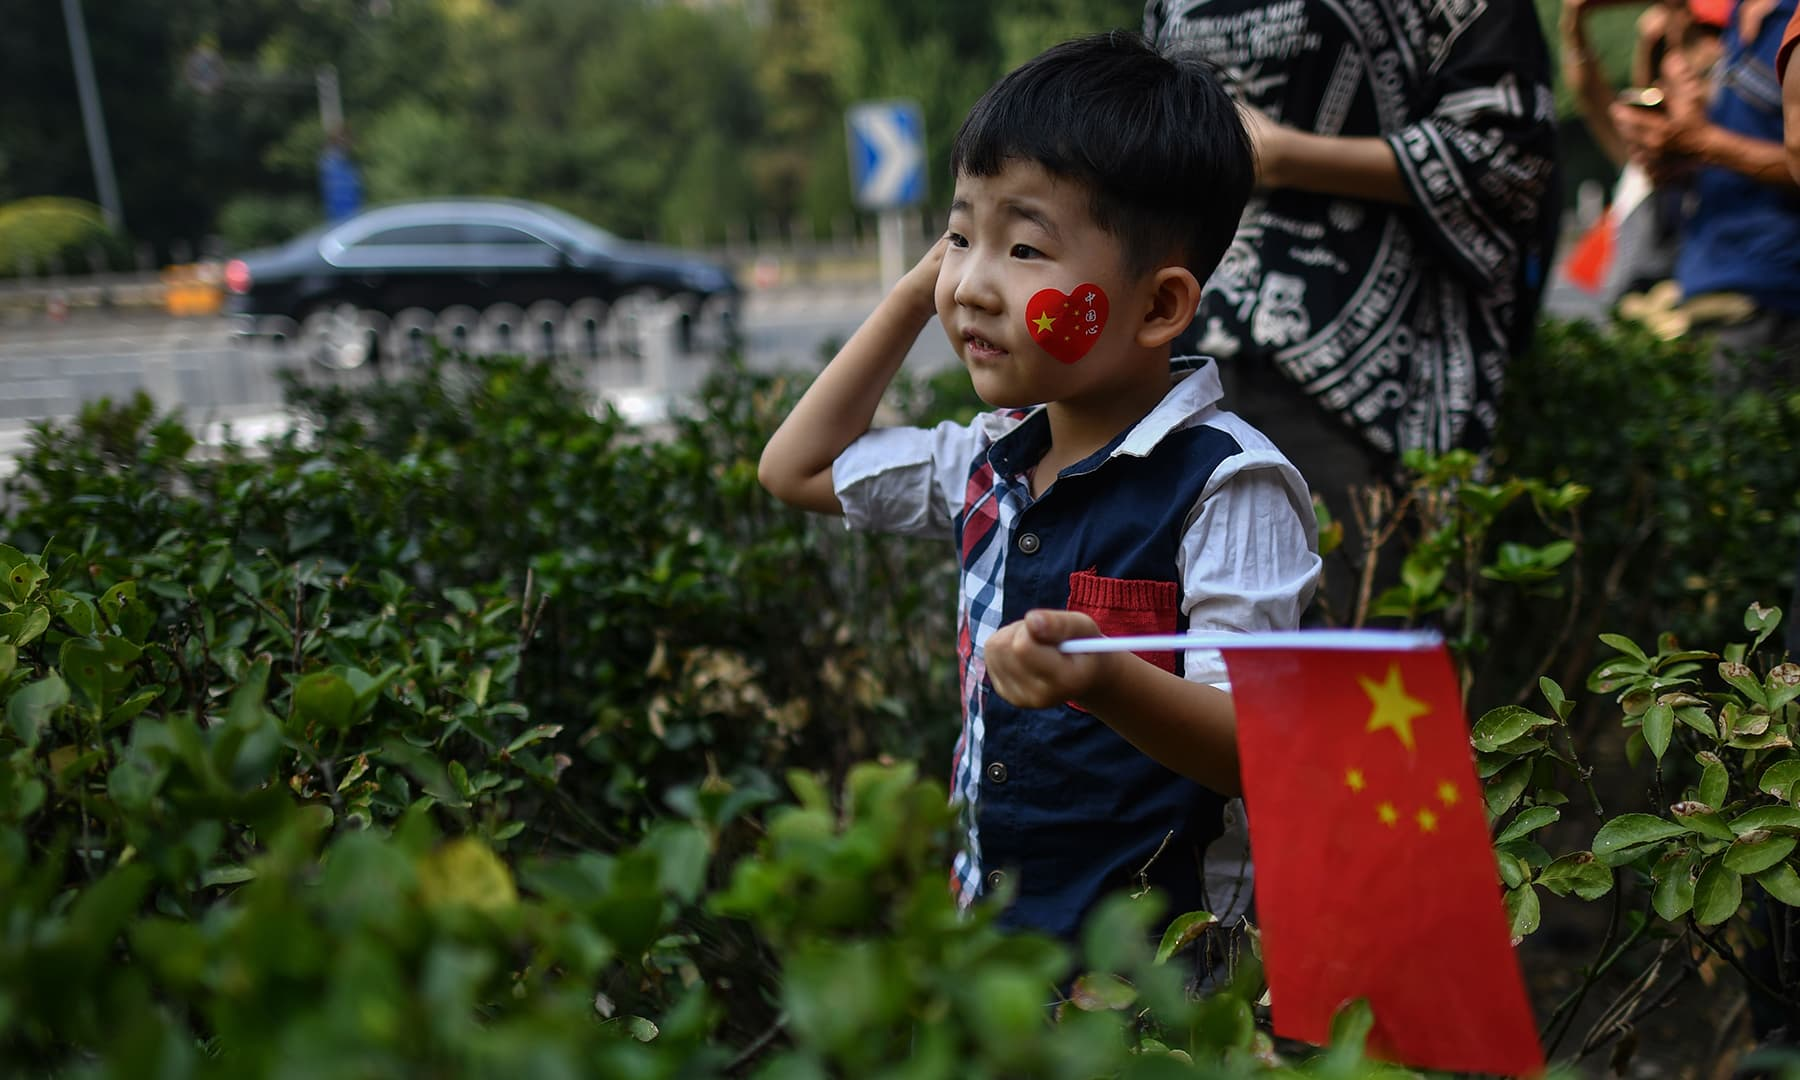 A child watches a military parade along the security perimeter established around the official ceremony in Tiananmen Square in Beijing. — AFP